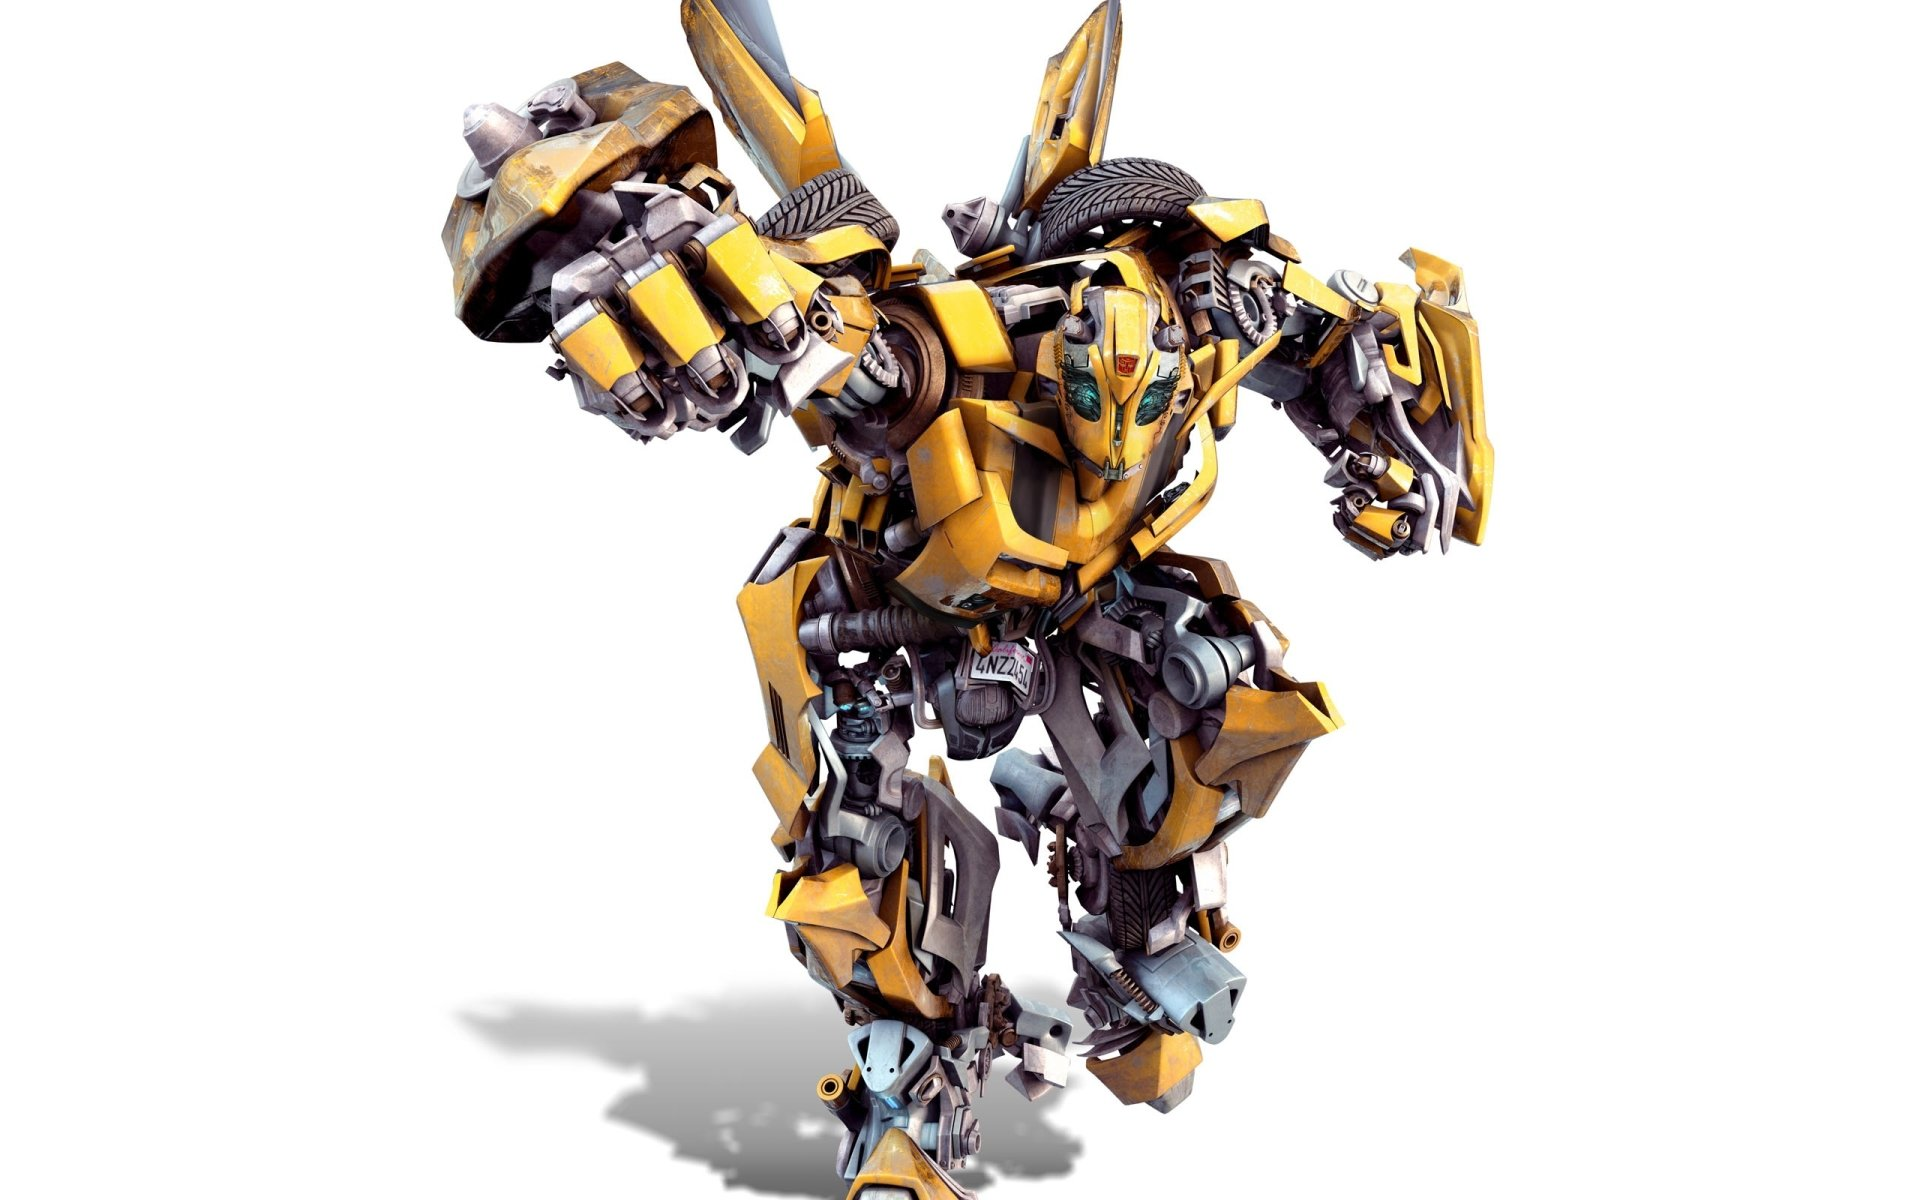 Movie - Transformers  Bumblebee (Transformers) Wallpaper